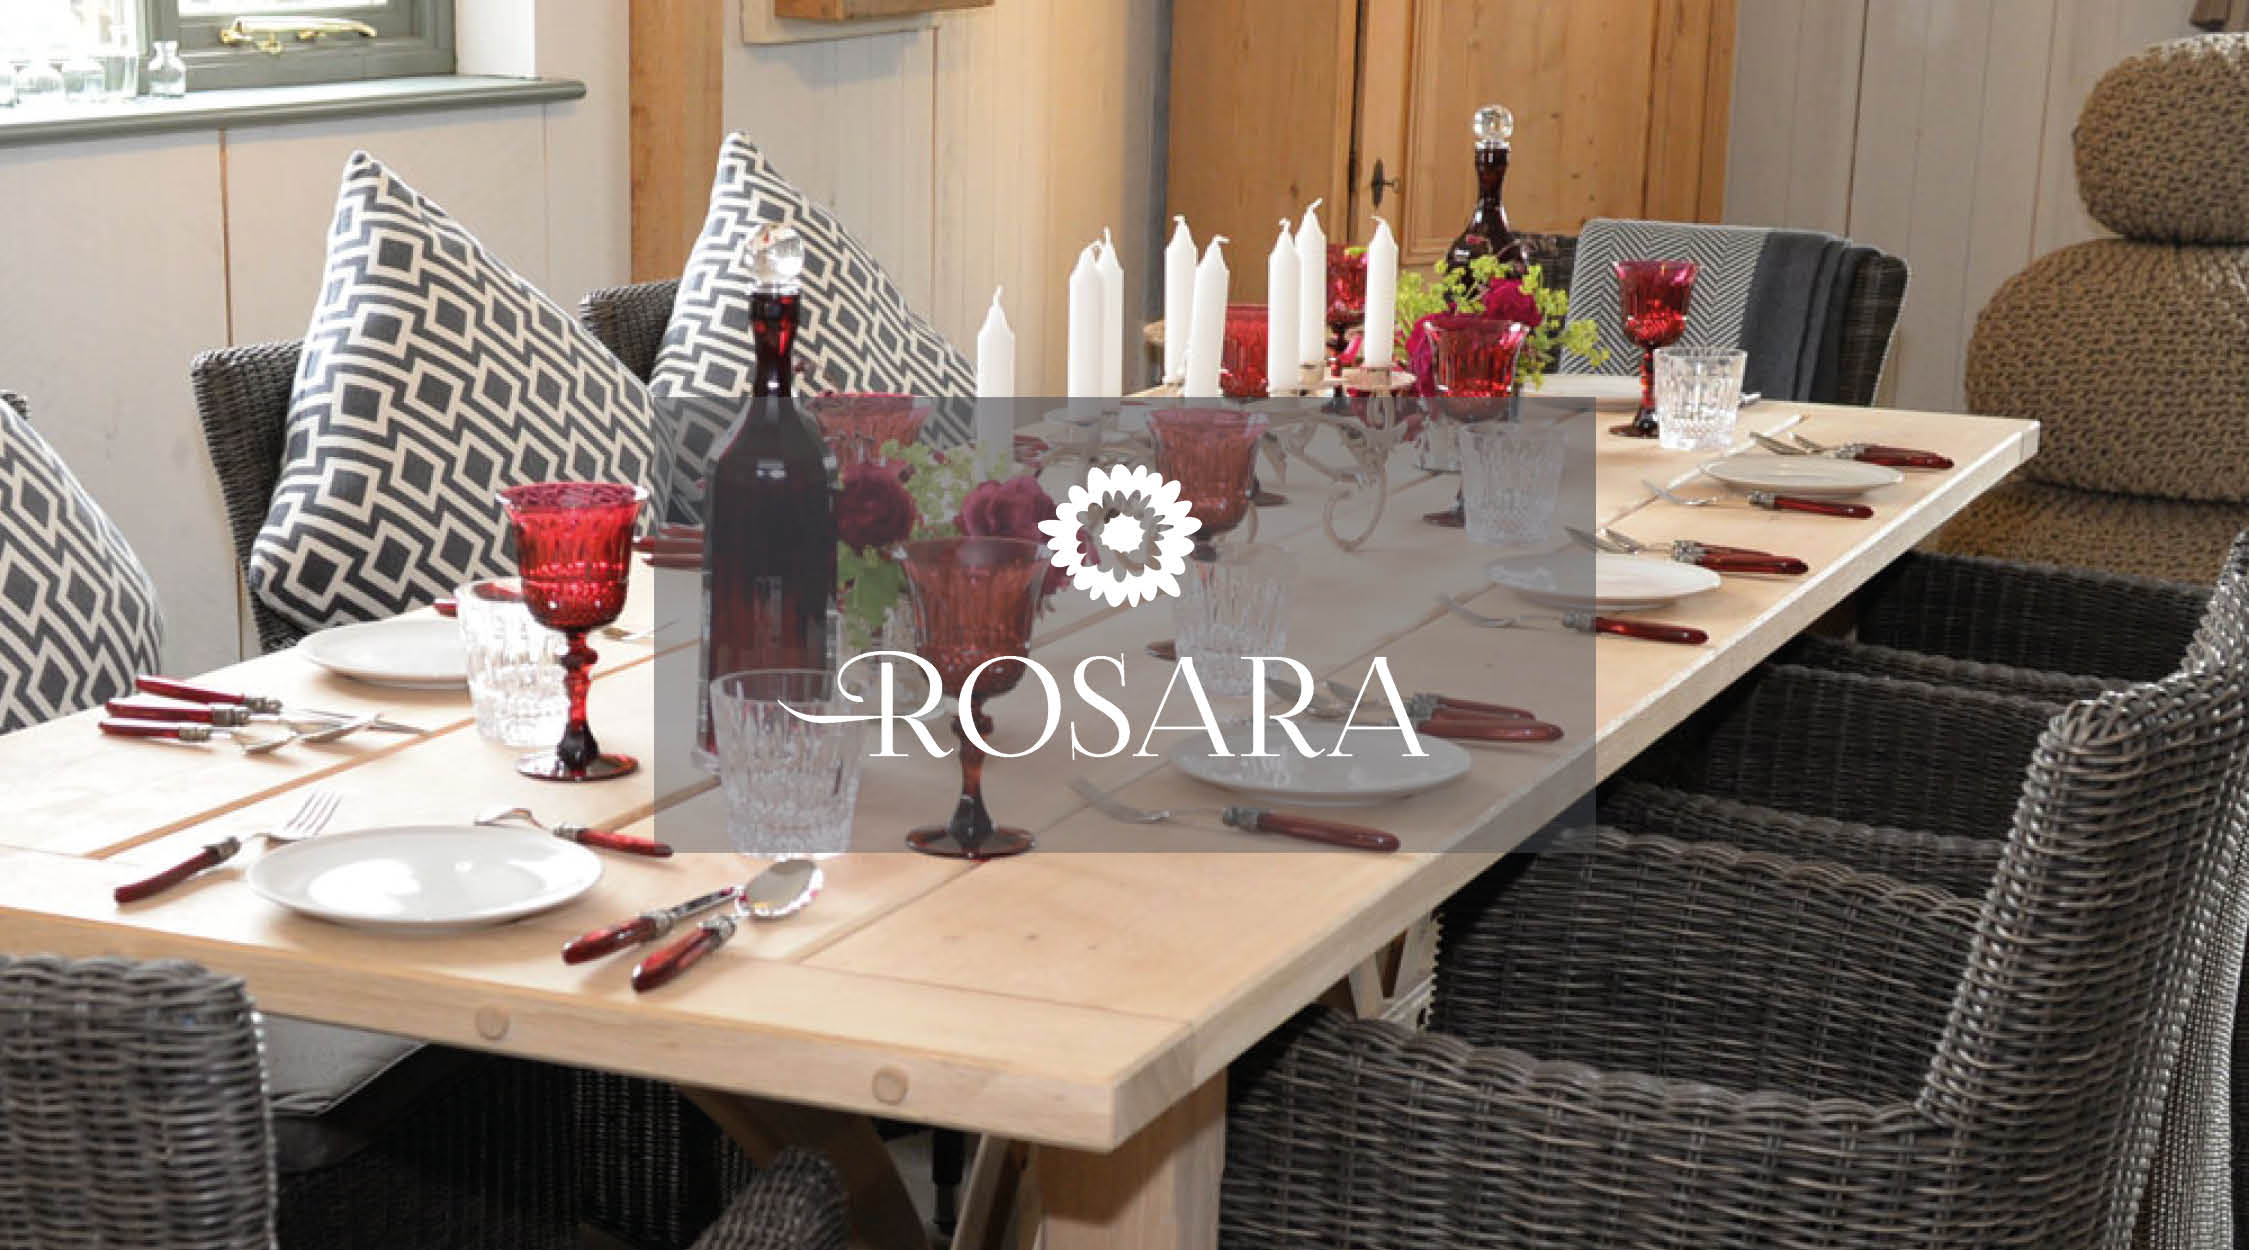 2016 – Rosara established